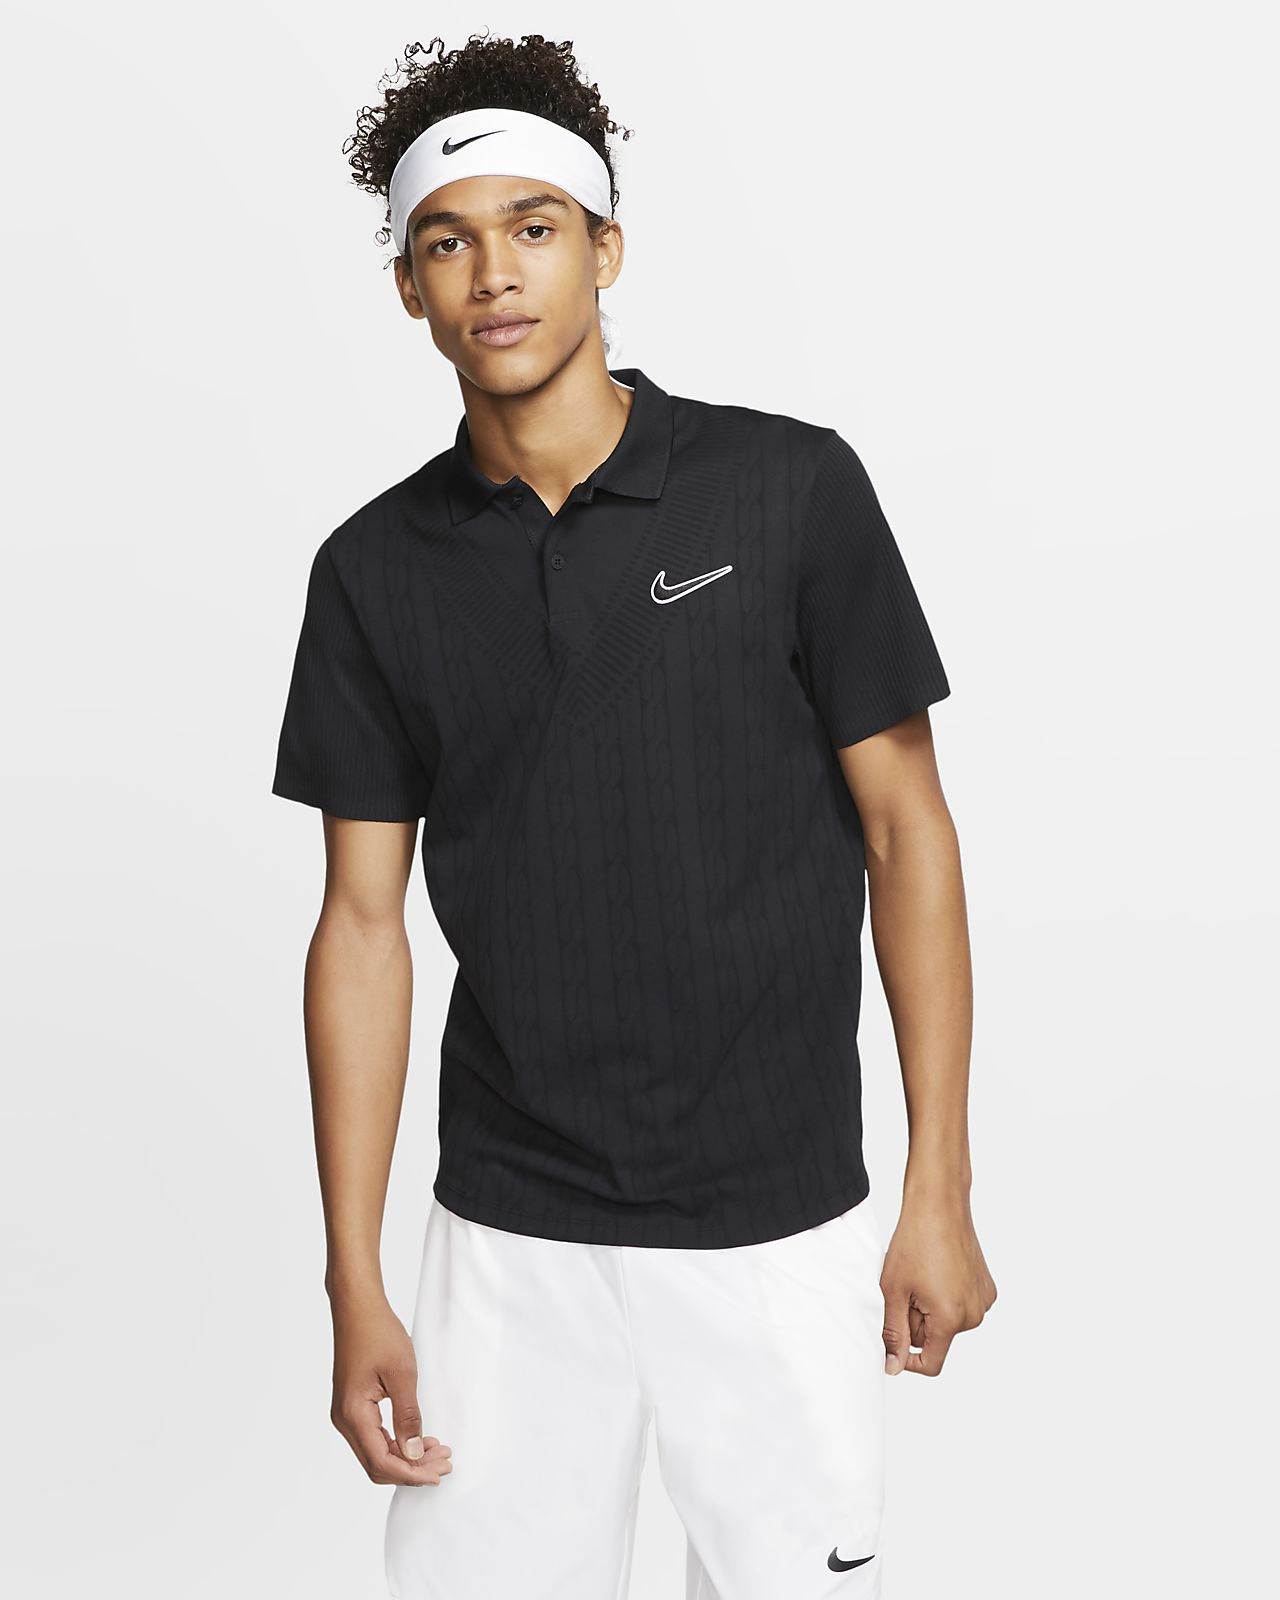 NikeCourt Advantage Herren-Tennis-Polo